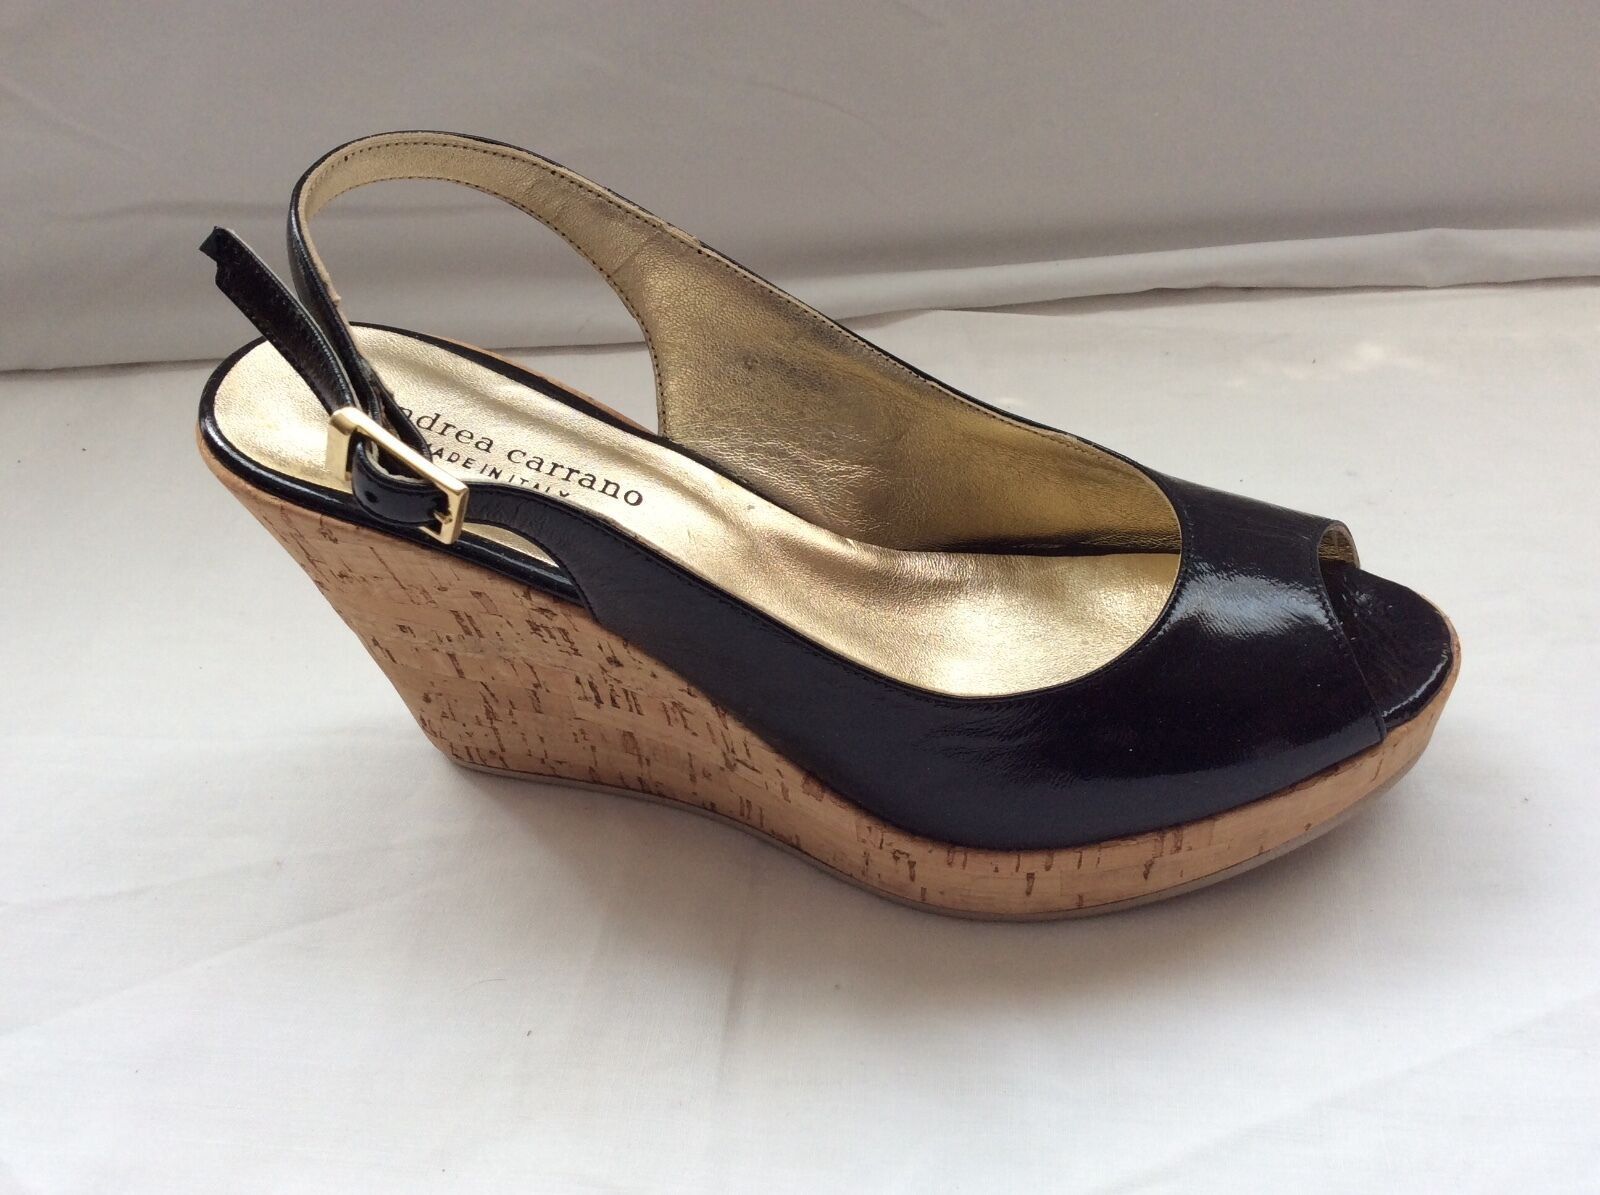 Andrea Carrano nero Pattent Leather Cork Wedges Sz 38 B